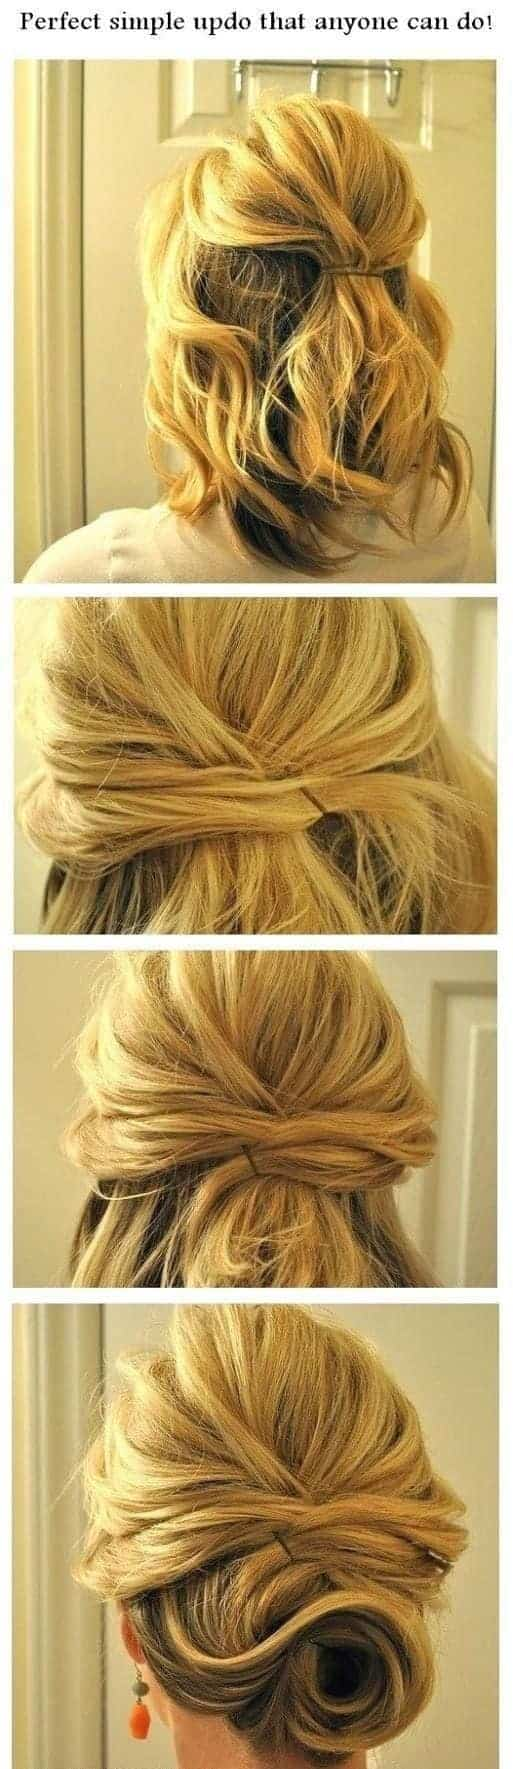 bohemian hairstyles for blonde women